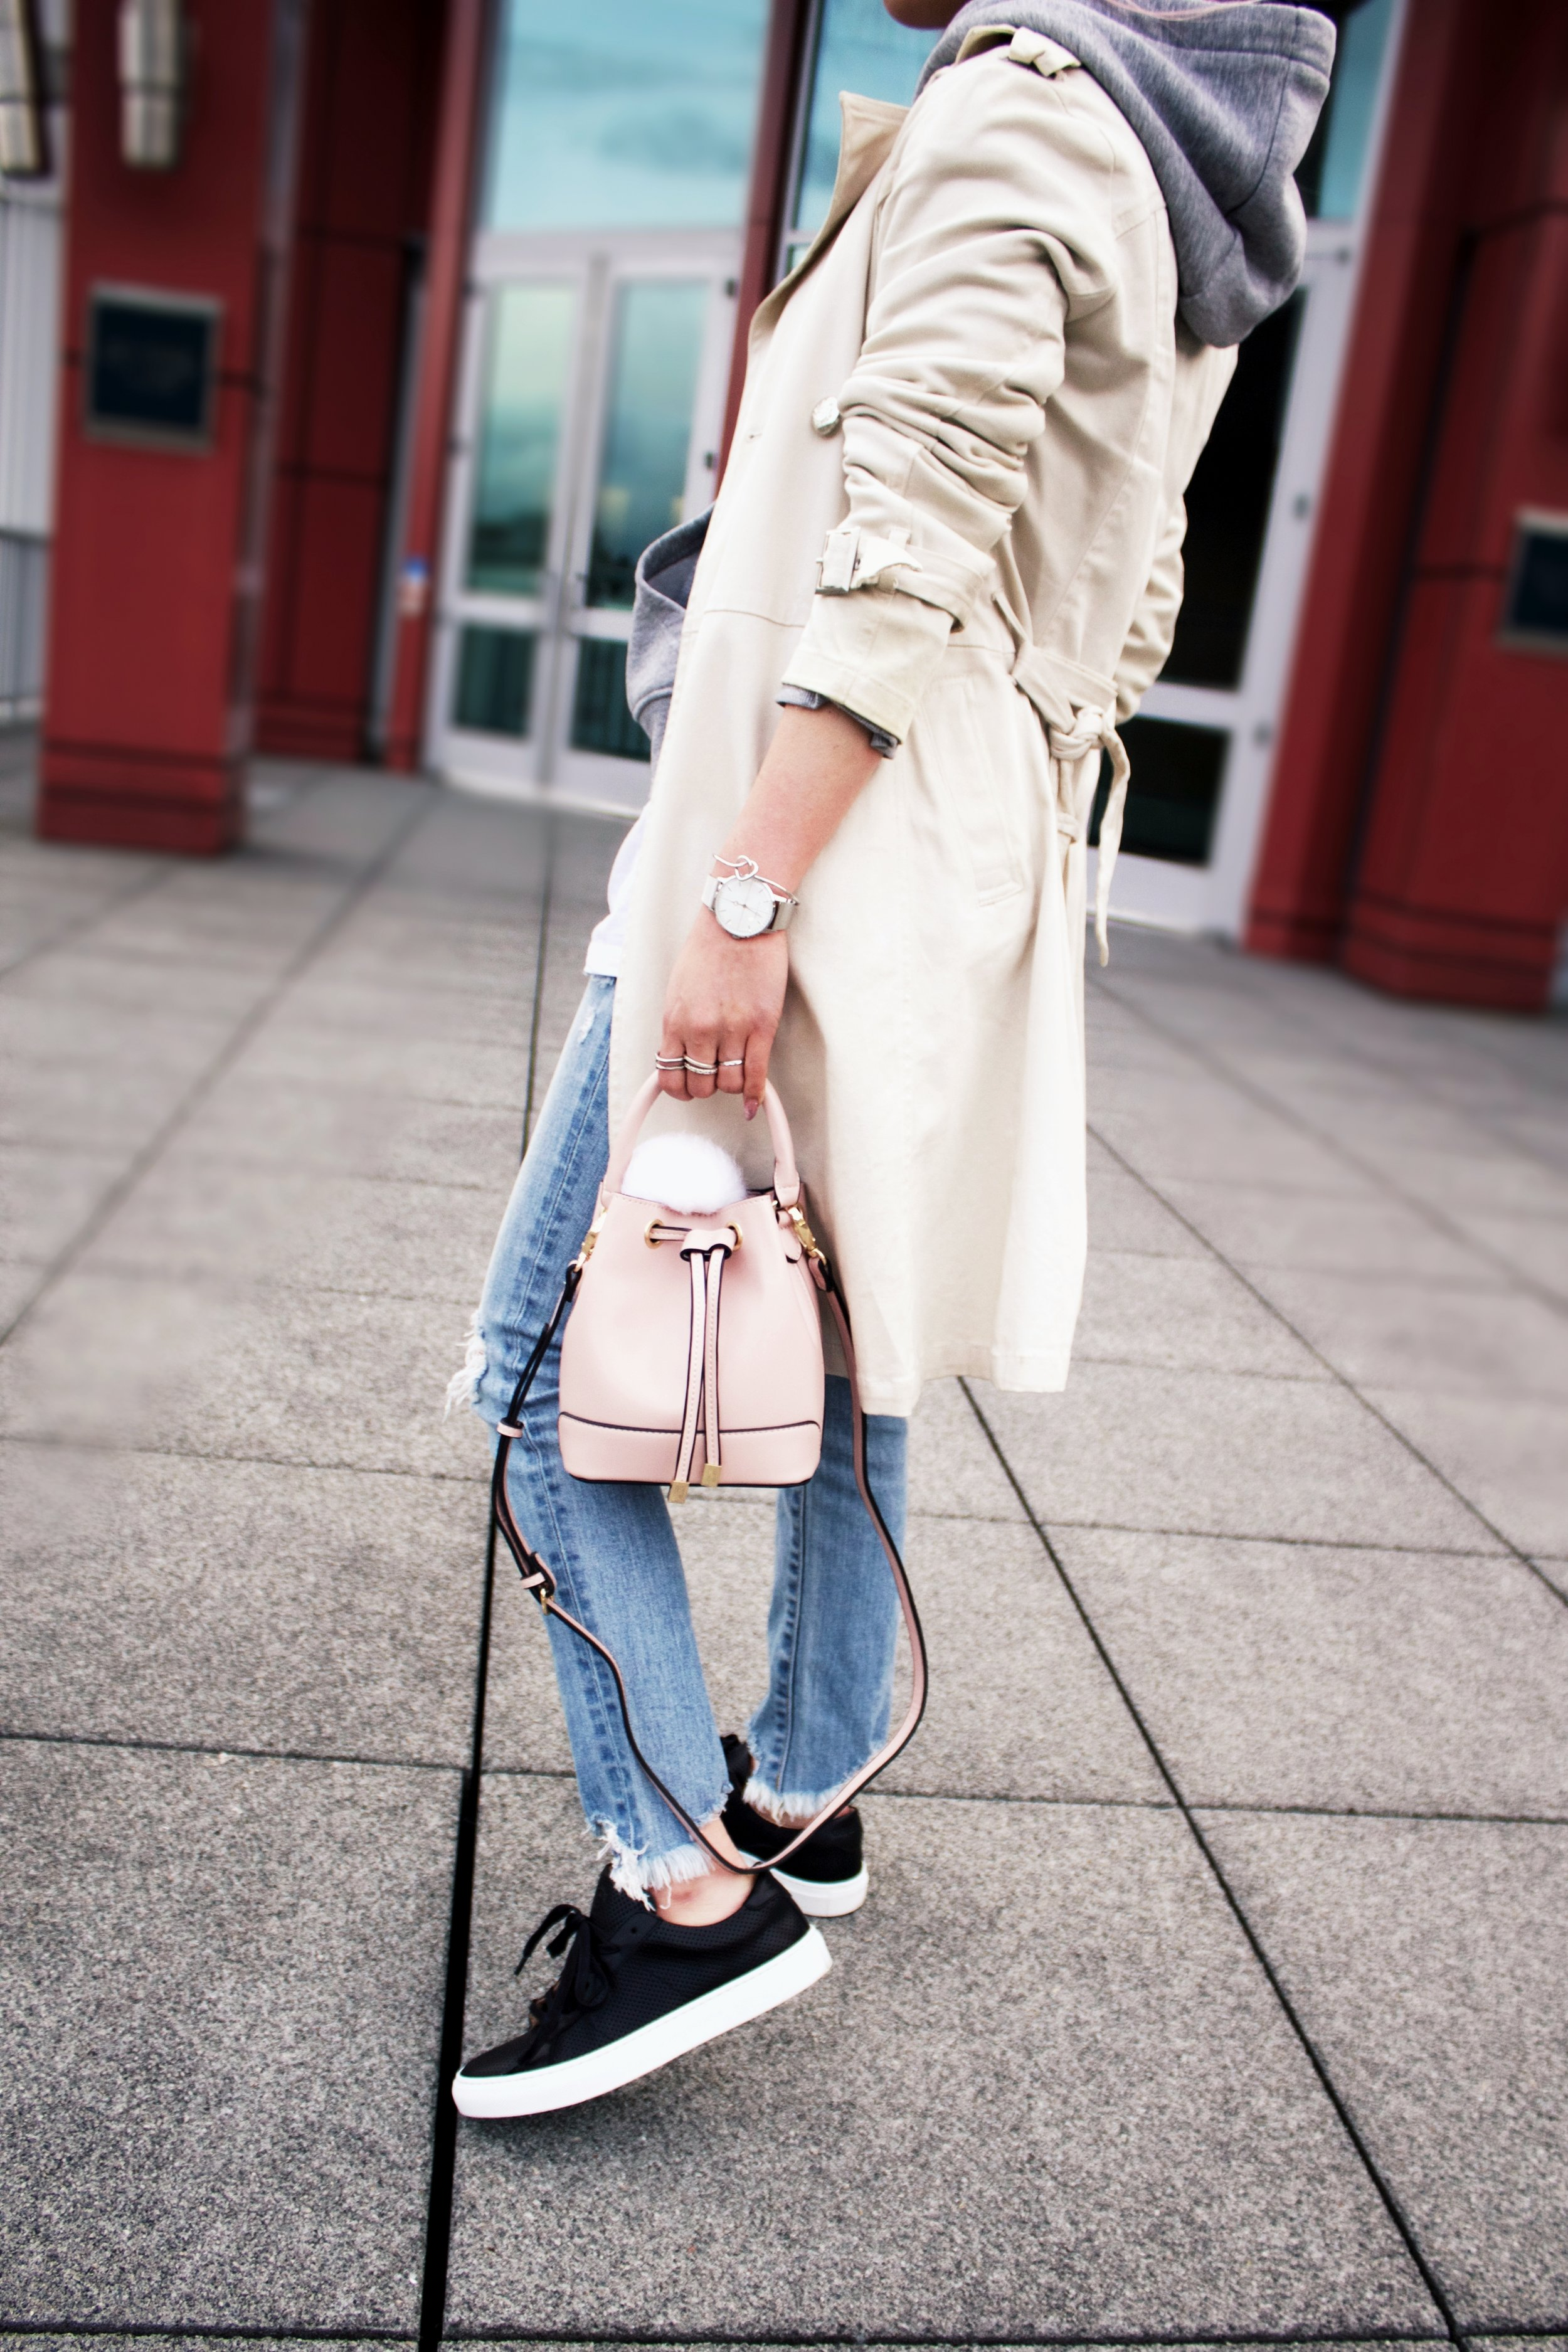 Greats THE ROYALE_Black Leather Sneakers_H&M Gray hoodie_Uniqlo Trench Coat_Moussy Frayed Jeans_Forever 21 Blush Mini Bucket Bag_Aikas love Closet_Seattle Fashion Style Blogger_Japanese 6